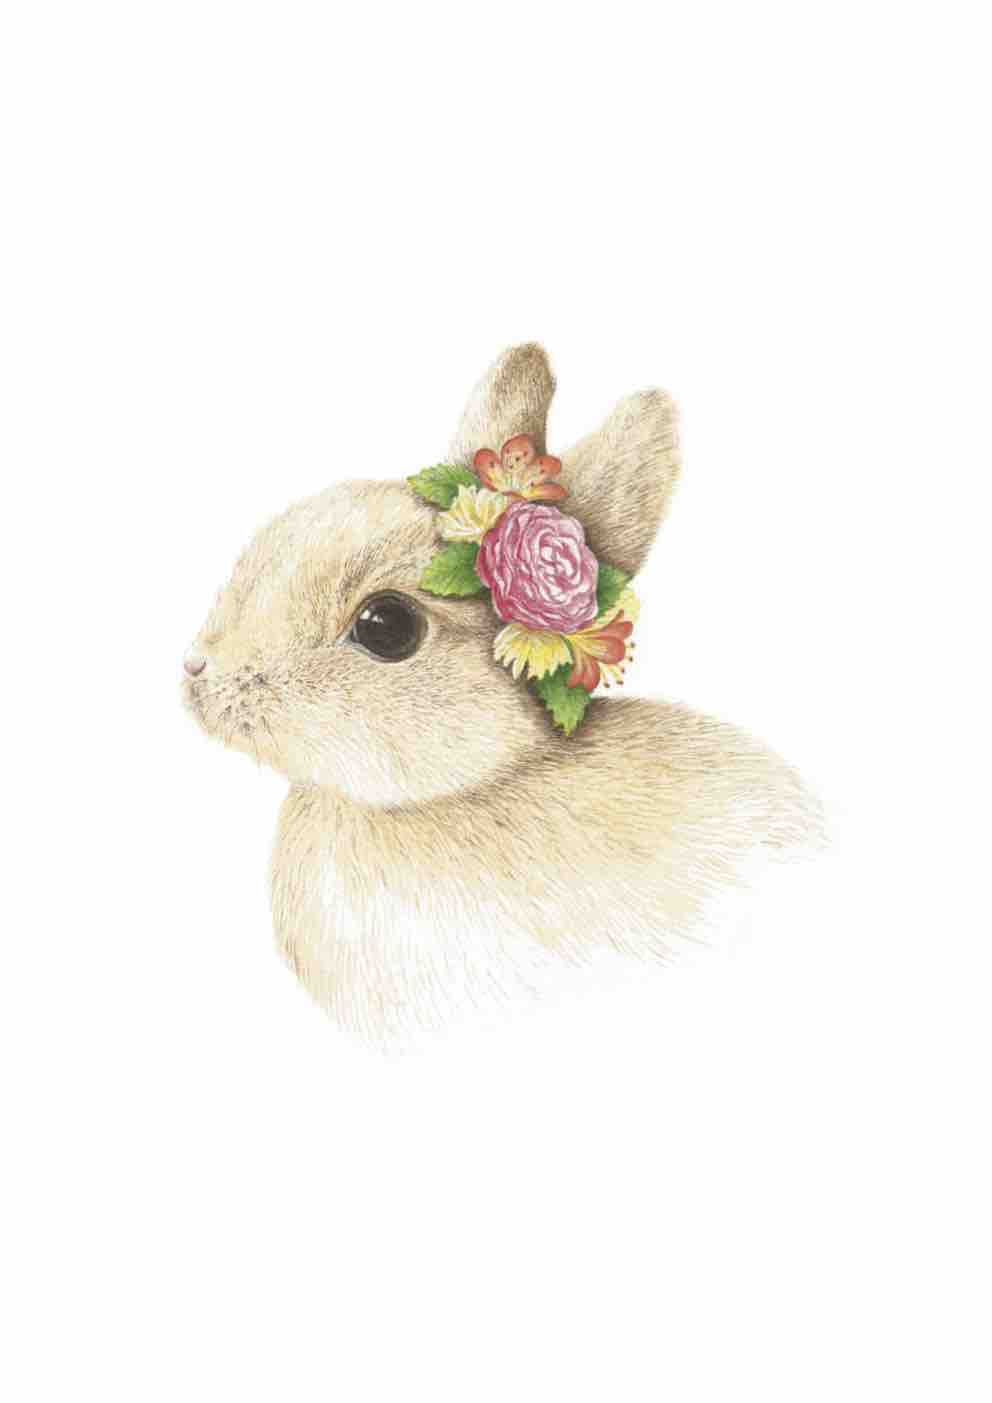 Bunny With Flower Crown Art Print Swaddle Online